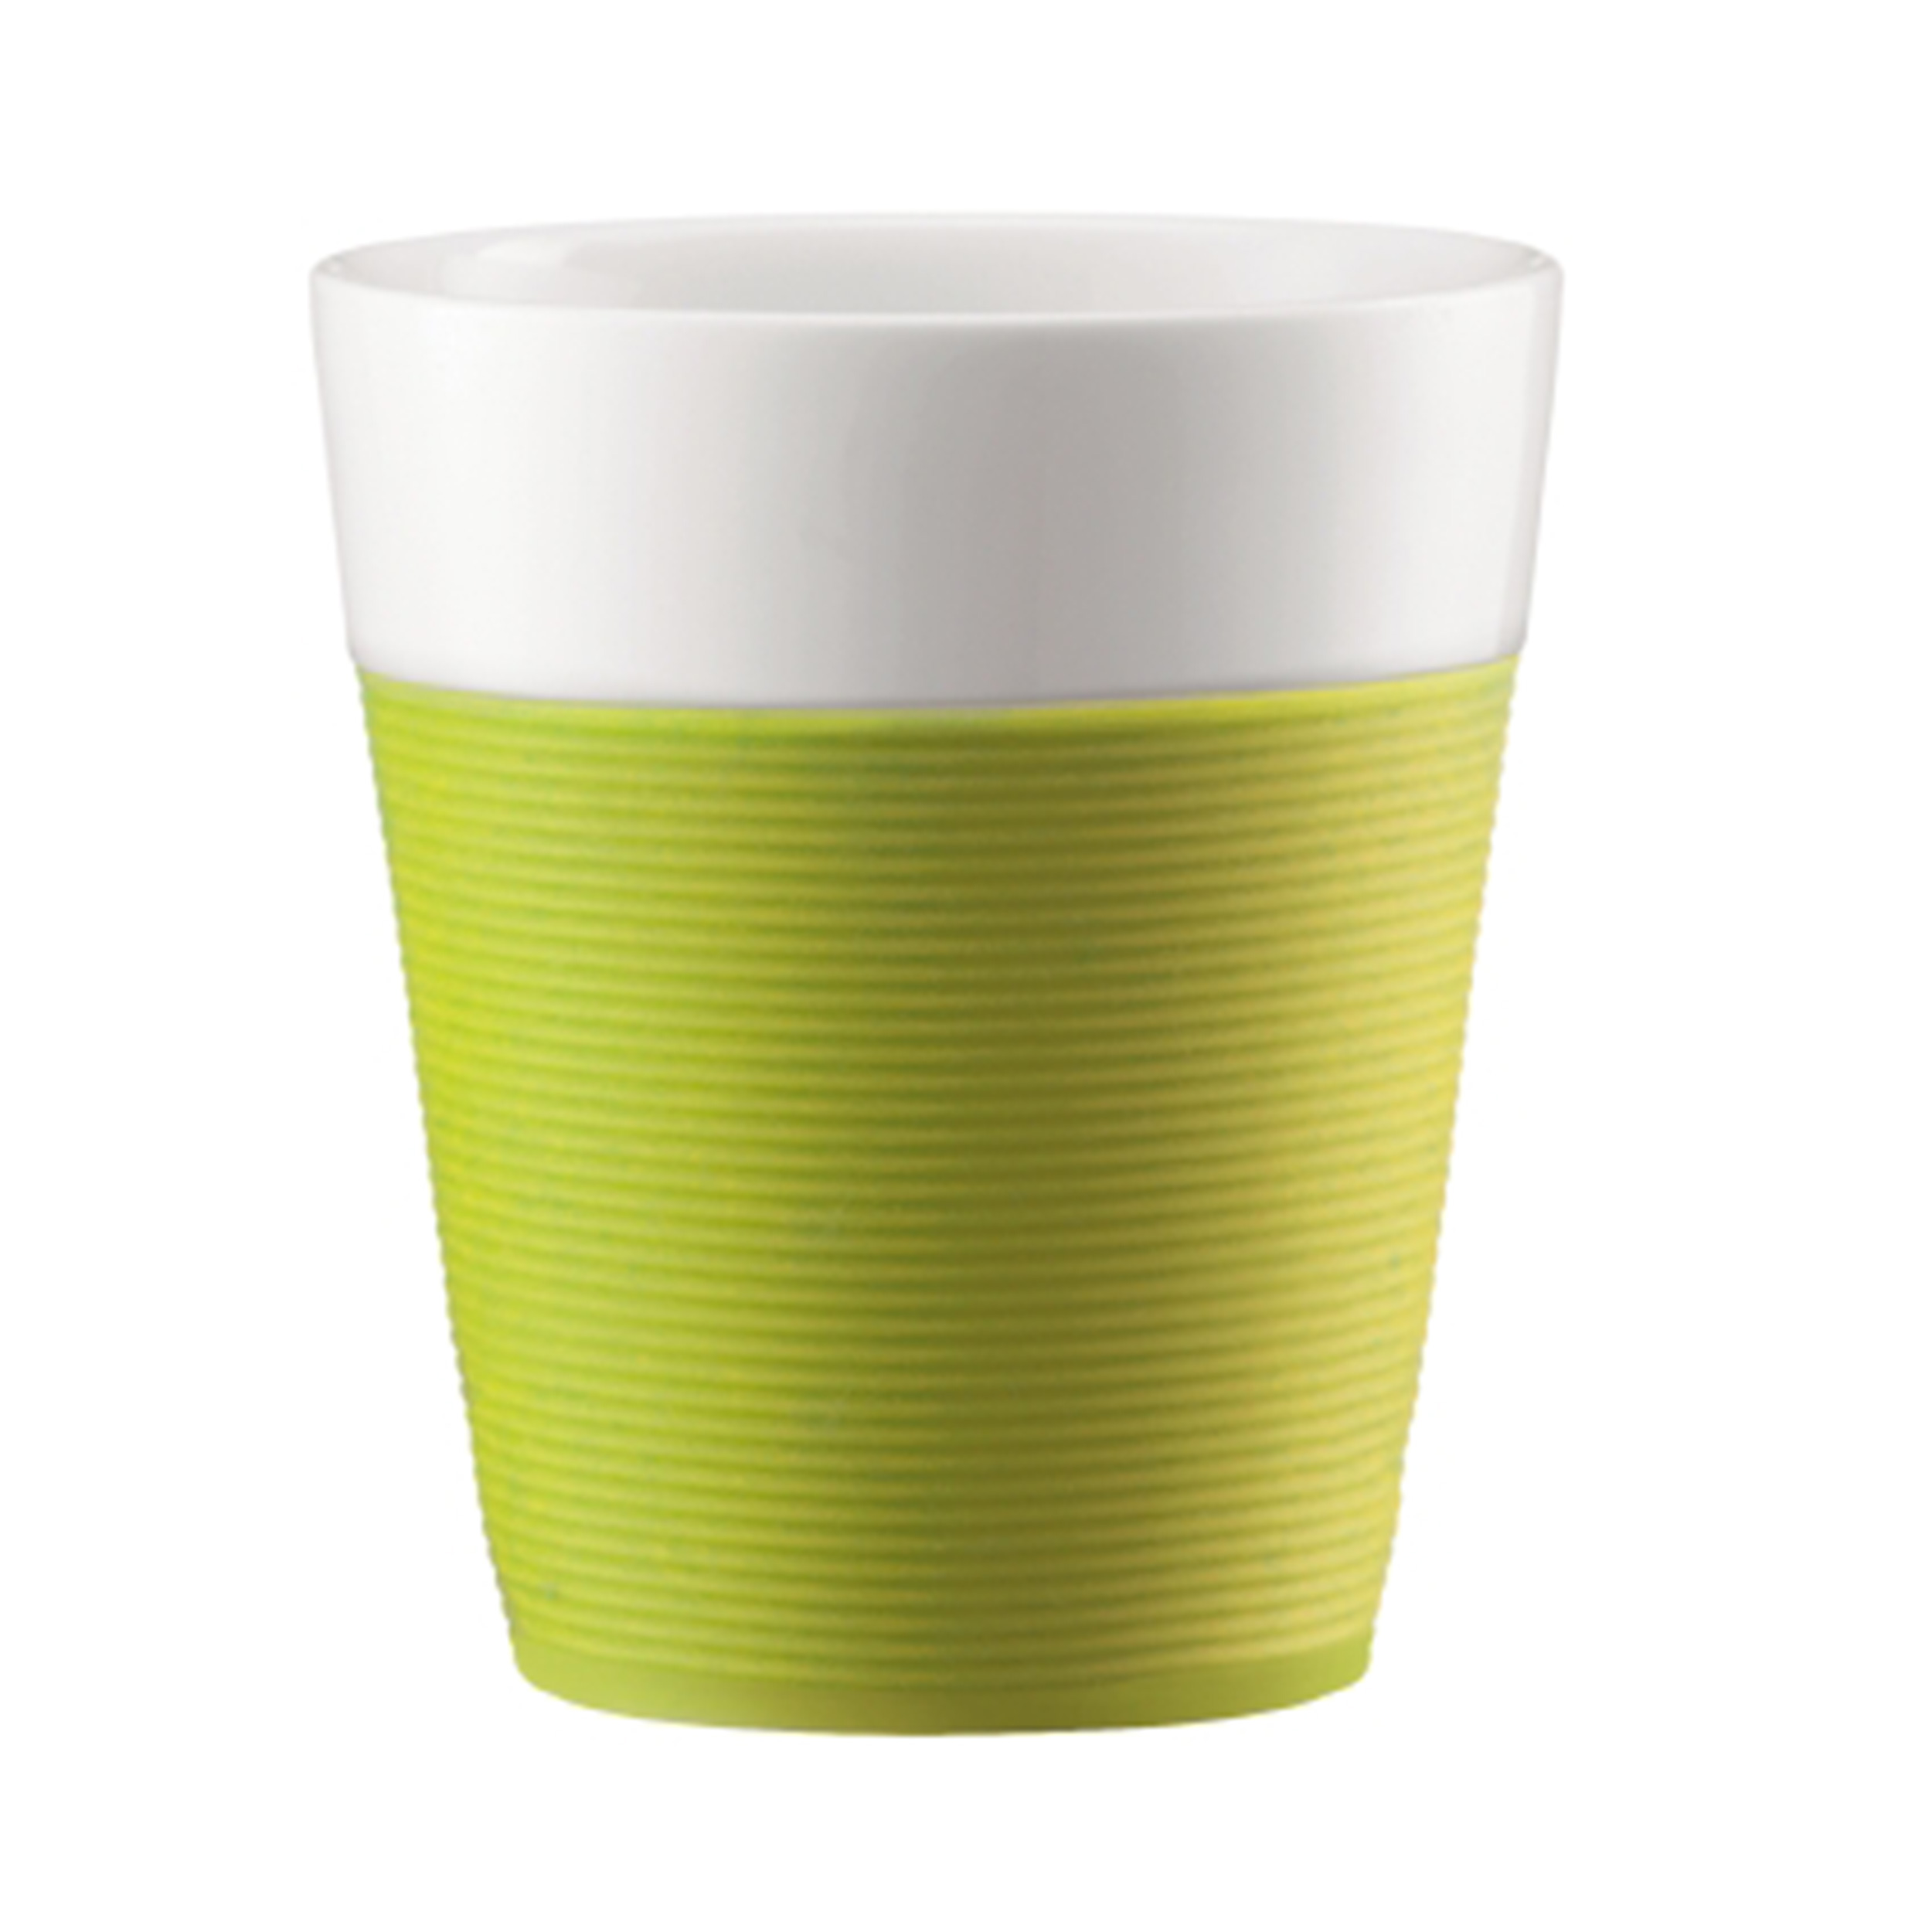 Bodum Tassen Bodum Bistro Cup With Silicone Ribbon 2 Set Tea Cup Coffee Cup Coffee Mug Porcelain Lime Green 300 Ml 11582 565 At About Tea De Shop